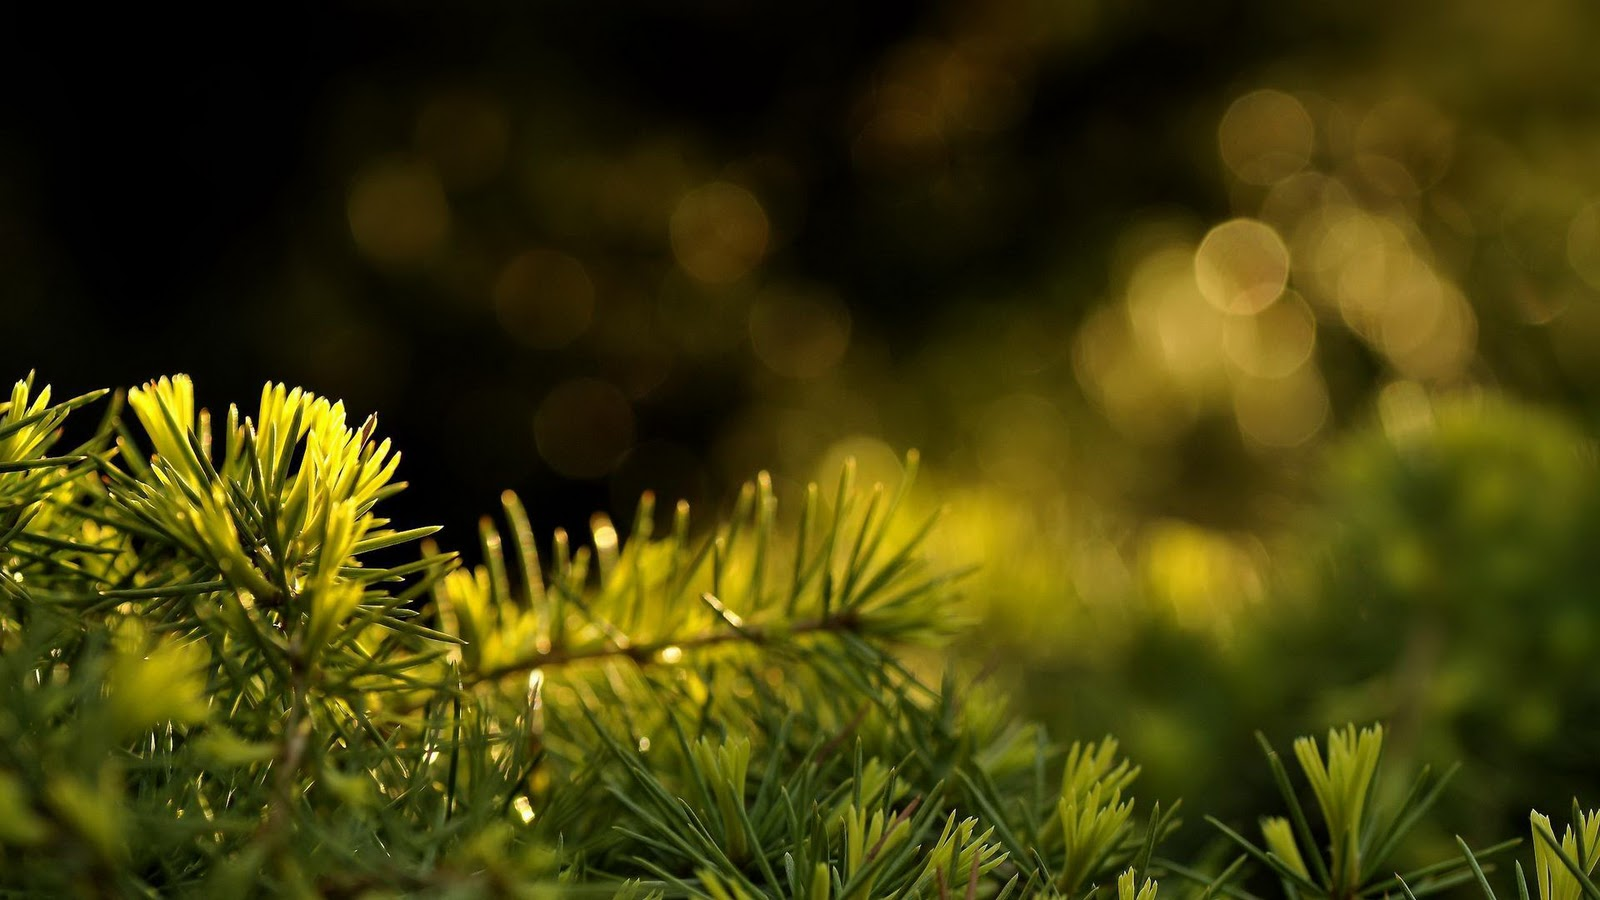 dew on a pine in the forest wallpaper 2012 download wallpapers 1600x900